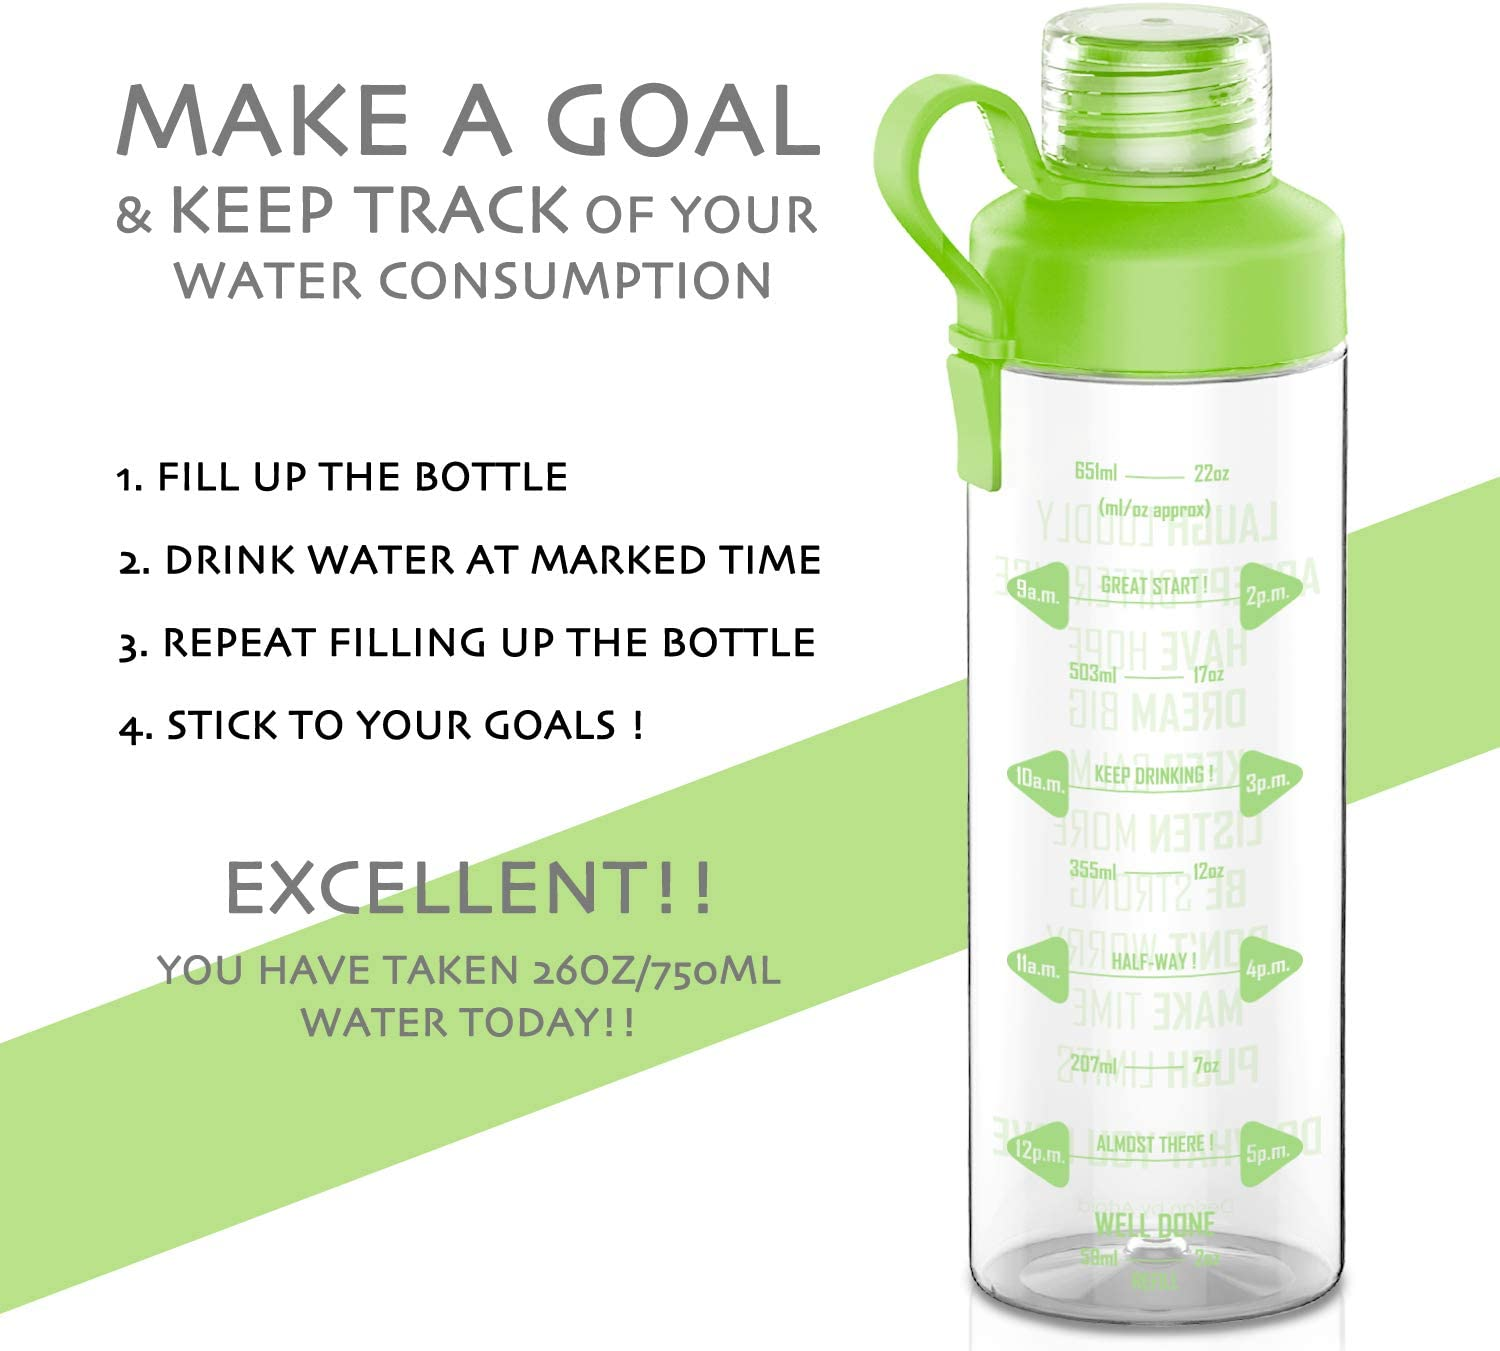 Artoid Mode 25oz Motivational Fitness Workout Sports Water Bottle with Measurements /& Time Marker Carbonation Friendly Goal Marked Times for Measuring Your H2O Intake BPA Free and Dishwasher Safe